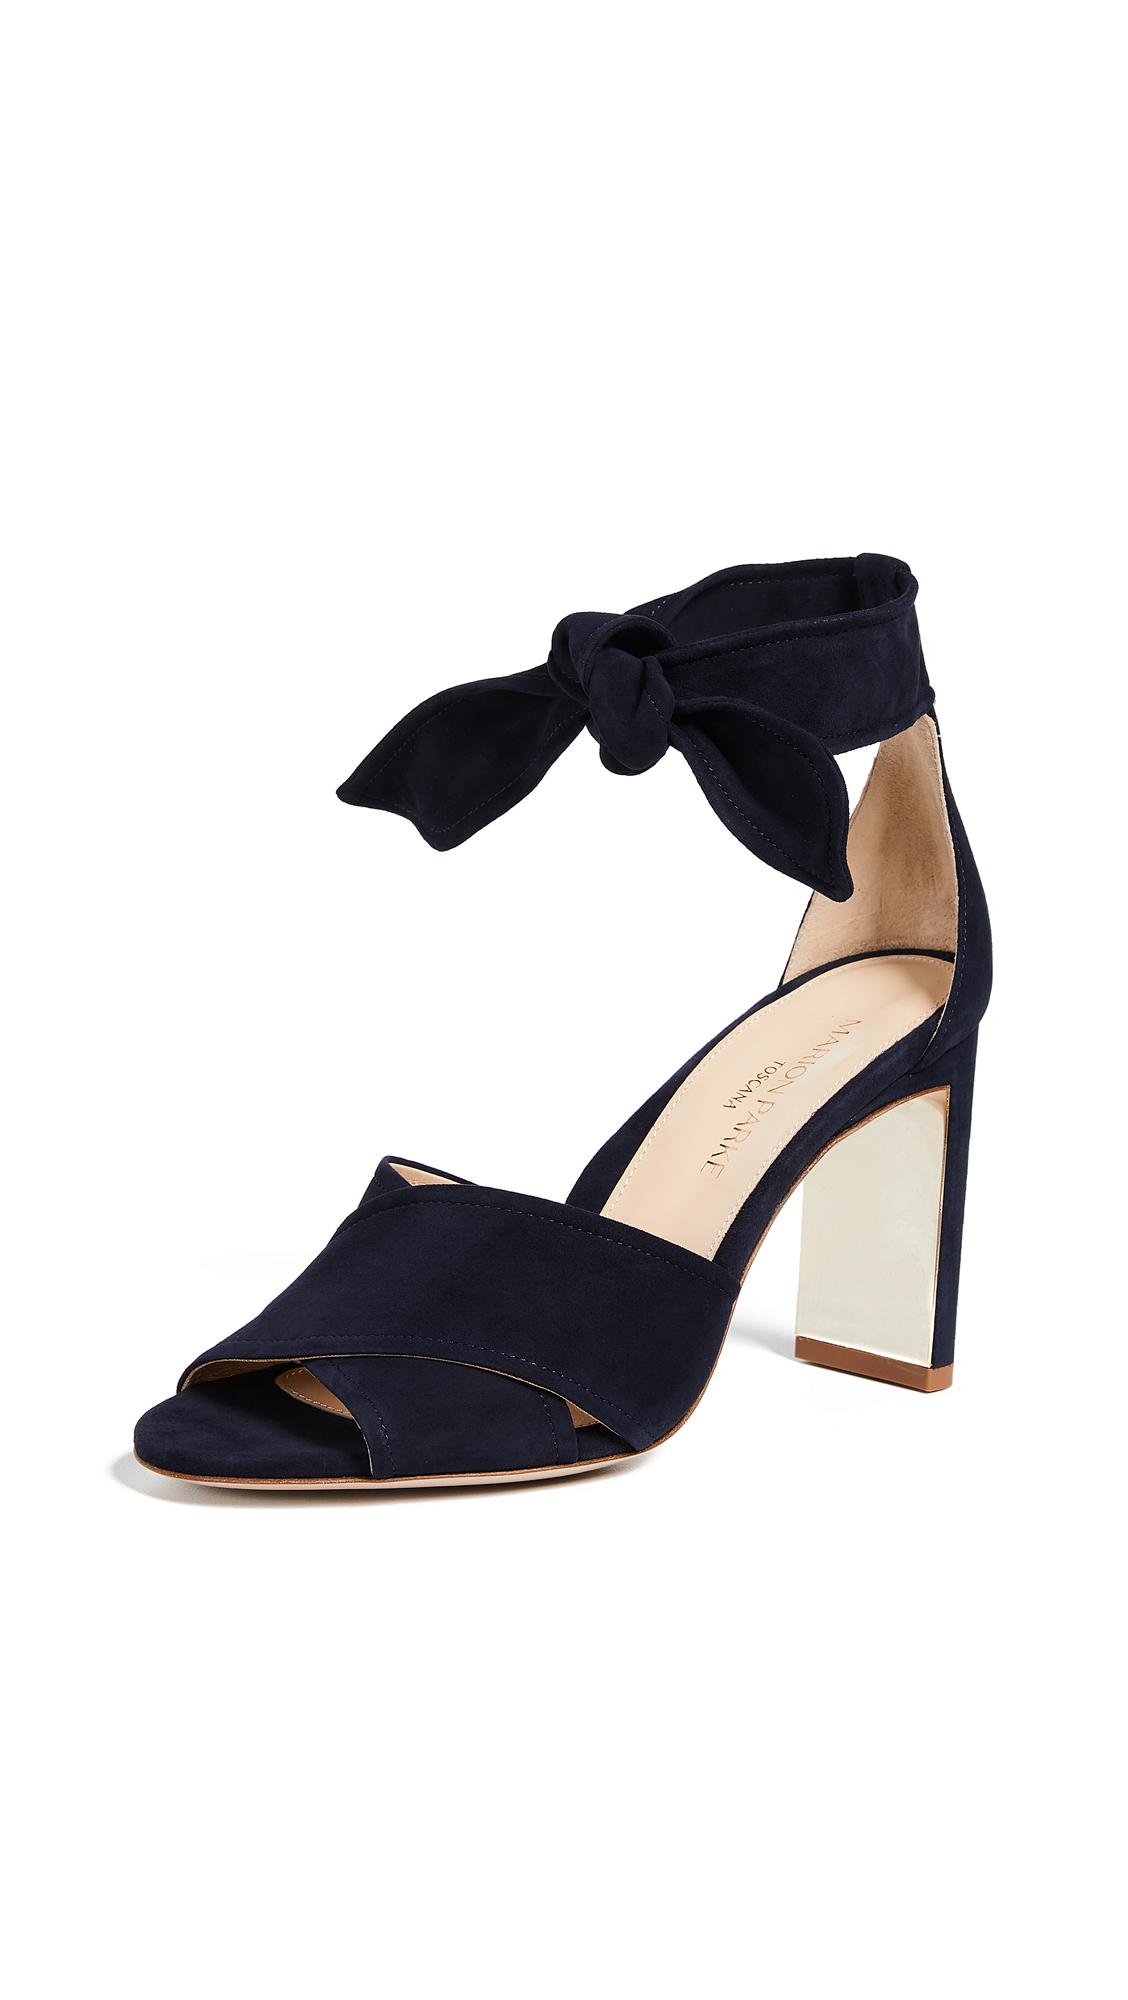 MARION PARKE Leah Ankle Strap Sandals in Navy